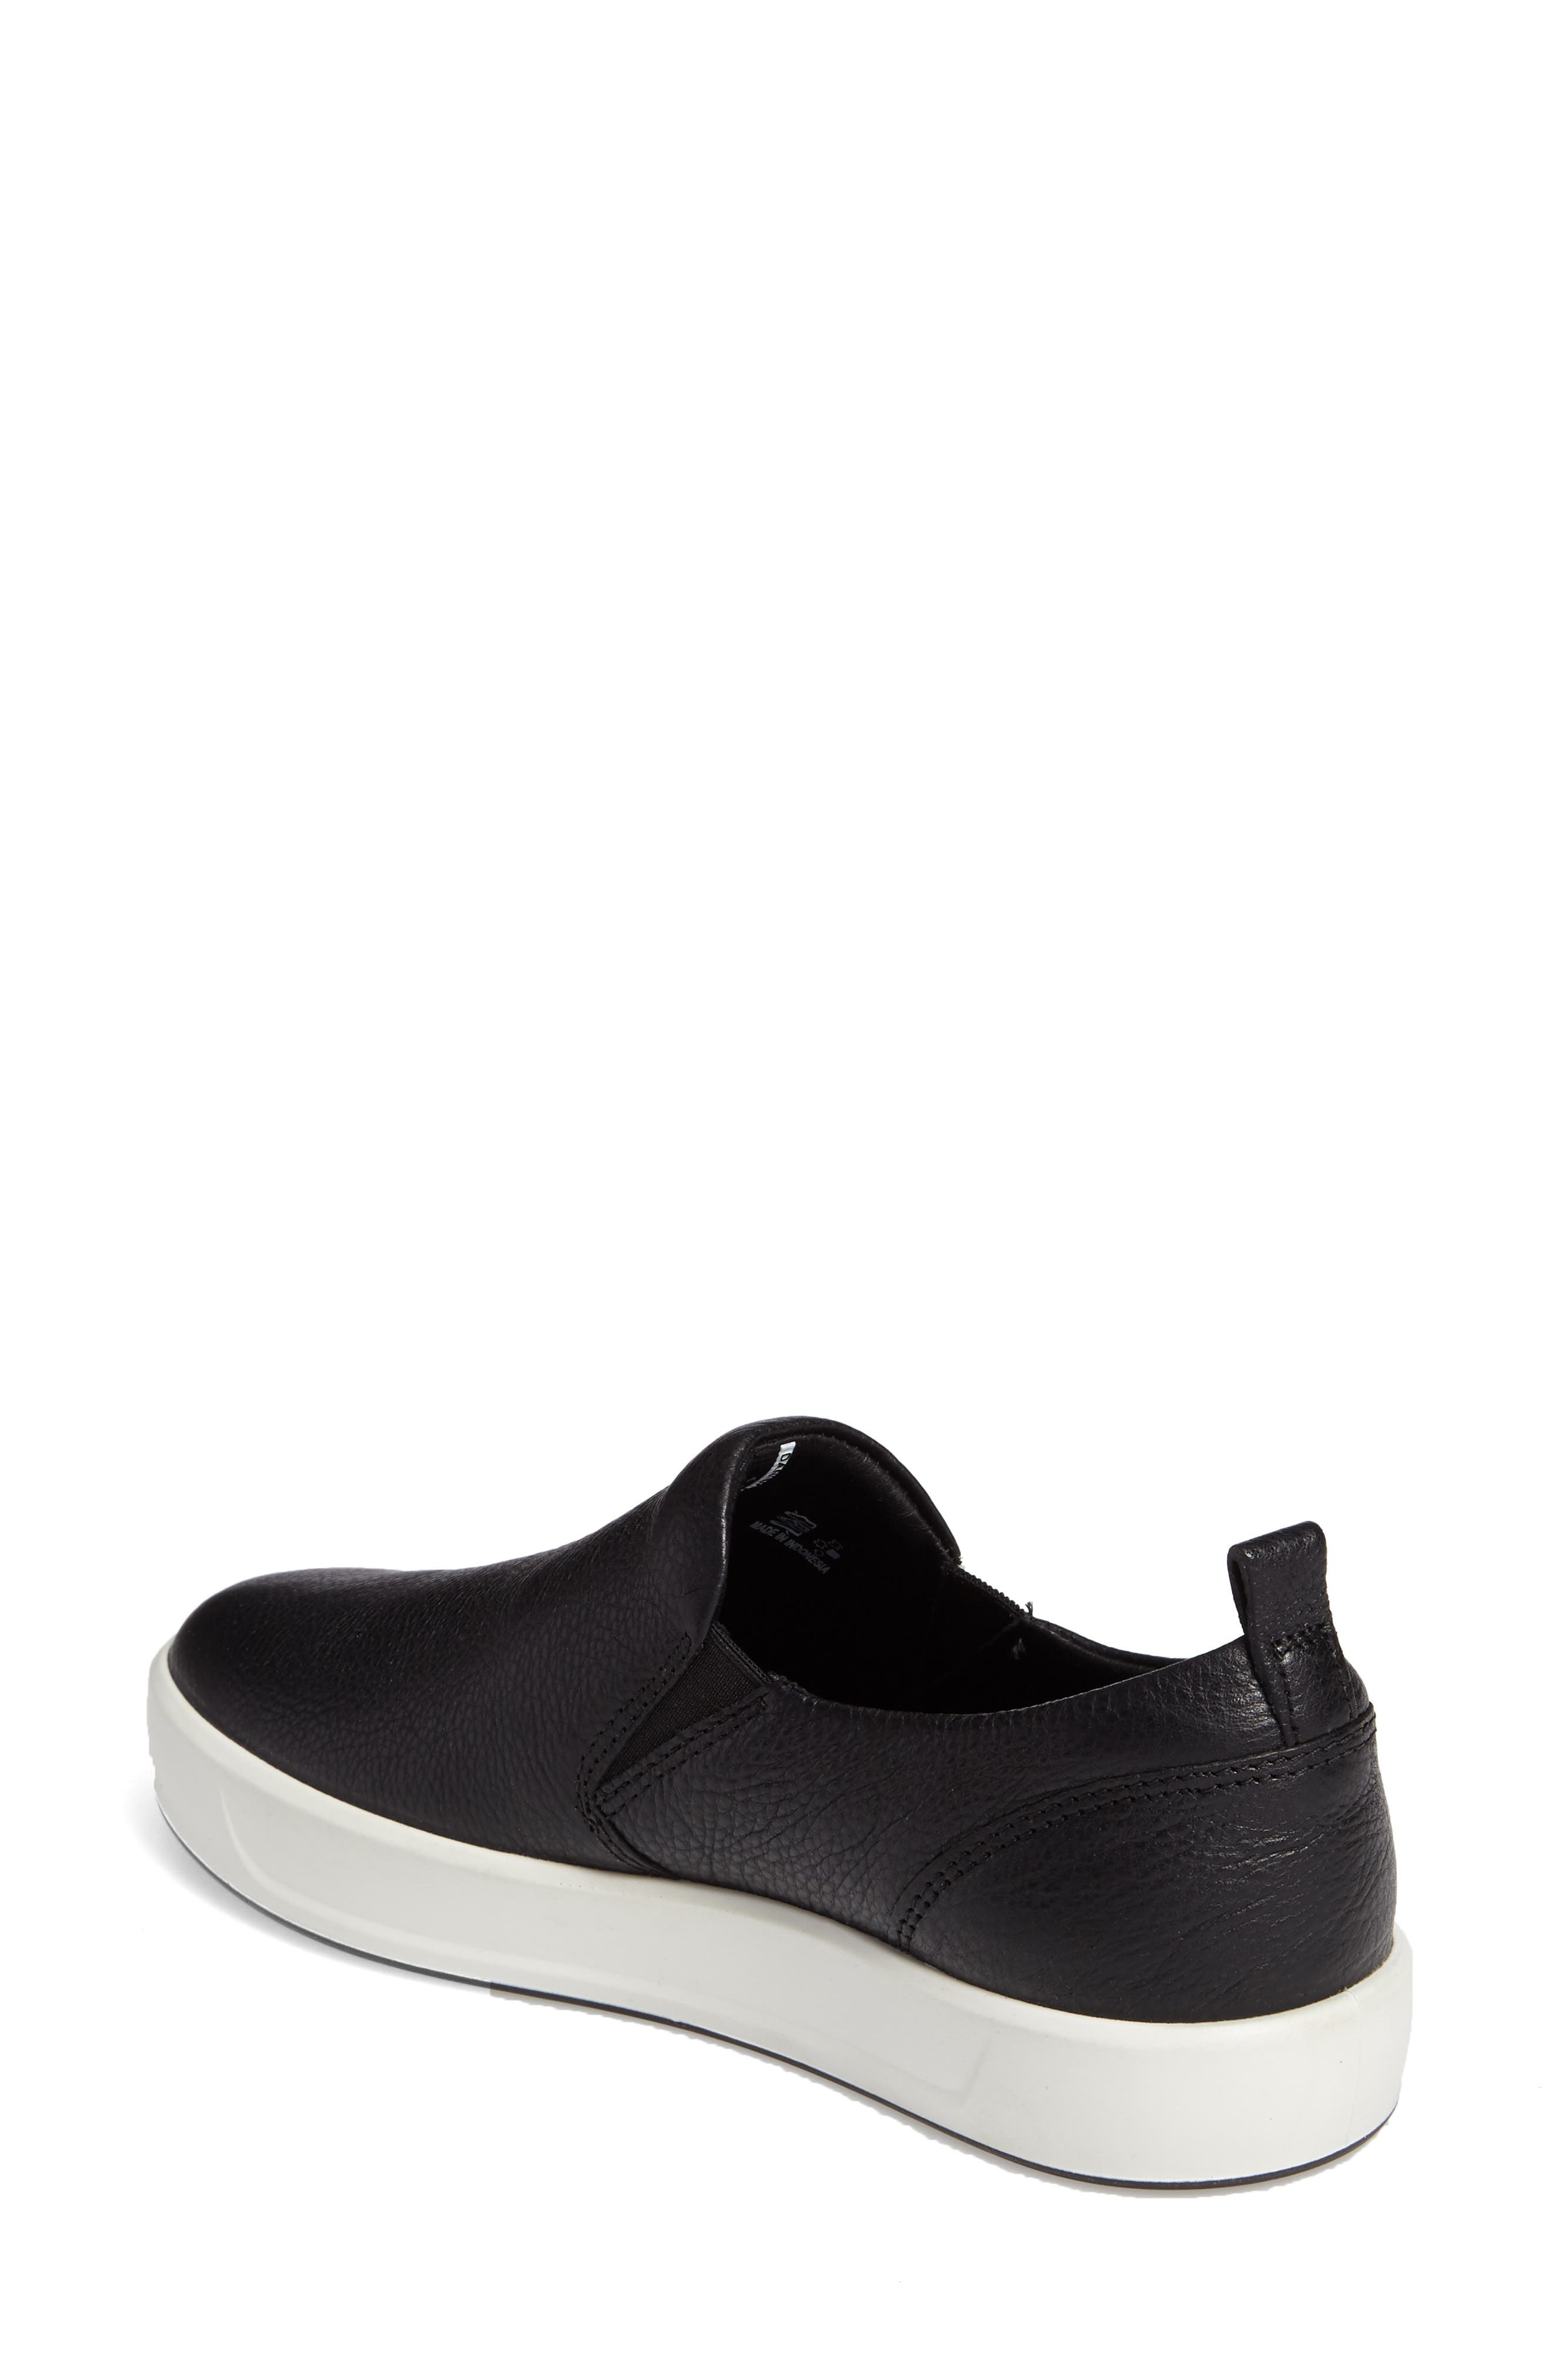 Alternate Image 2  - ECCO Soft 8 Slip-On Sneaker (Women)